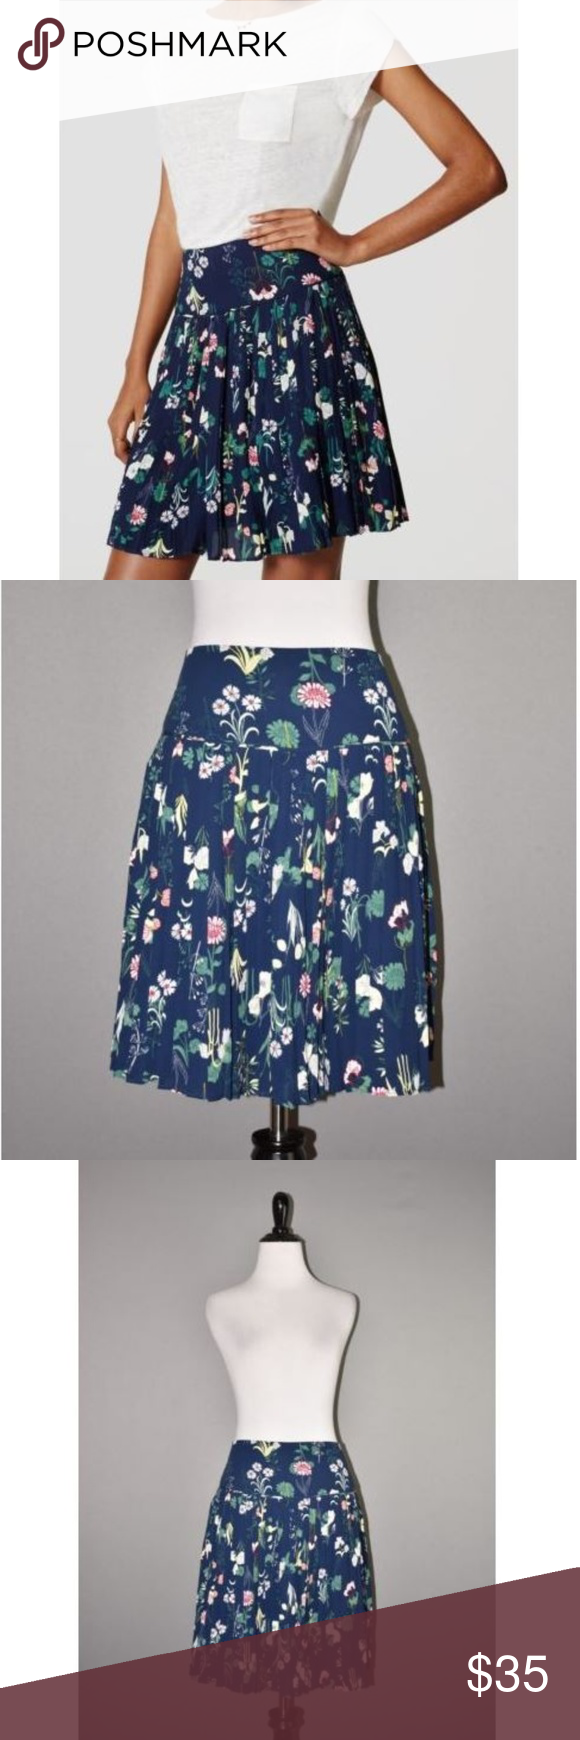 Women's Clothing Buy Cheap Ann Taylor Loft Brand Lined Skirt Size Large Clothing, Shoes & Accessories